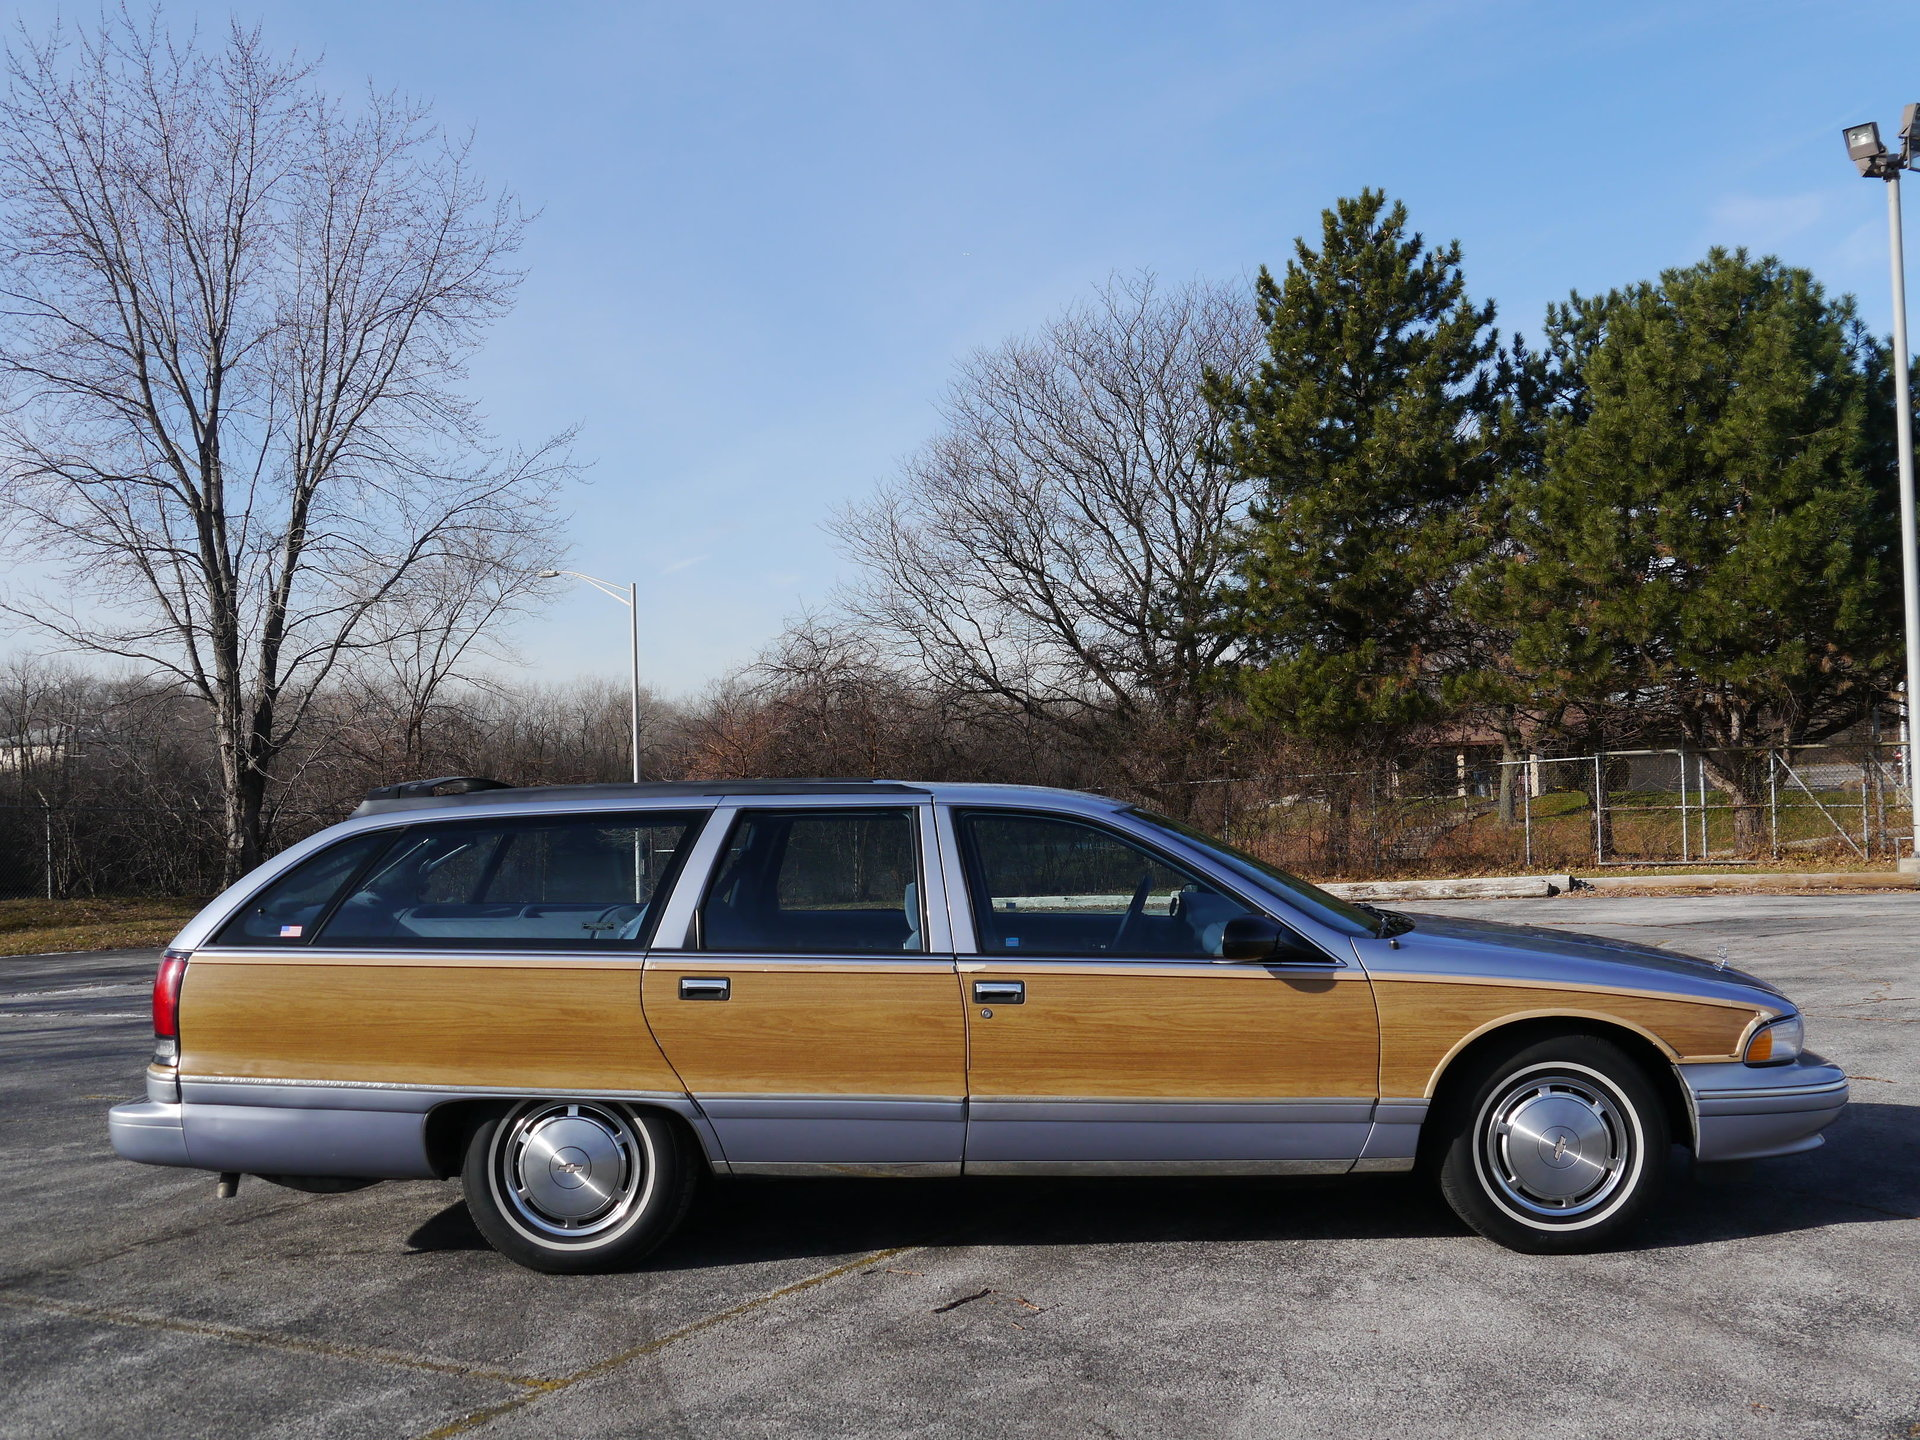 1995 Chevrolet Caprice Classic Station Wagon For Sale 76134 Mcg 1966 Chevy